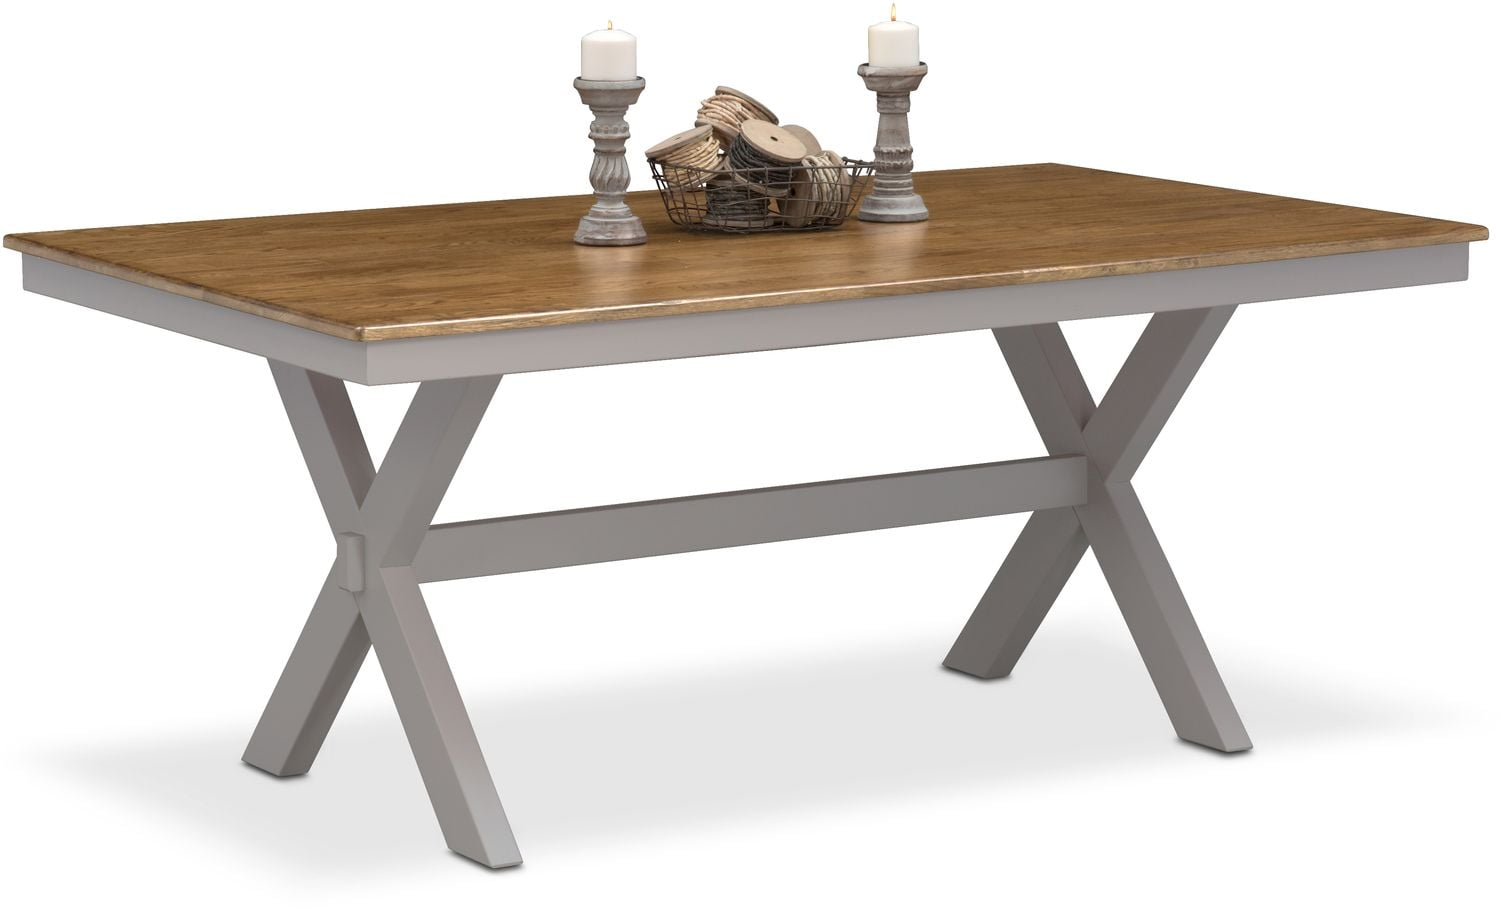 Dining Room Furniture - Nantucket Trestle Table - Oak and Gray